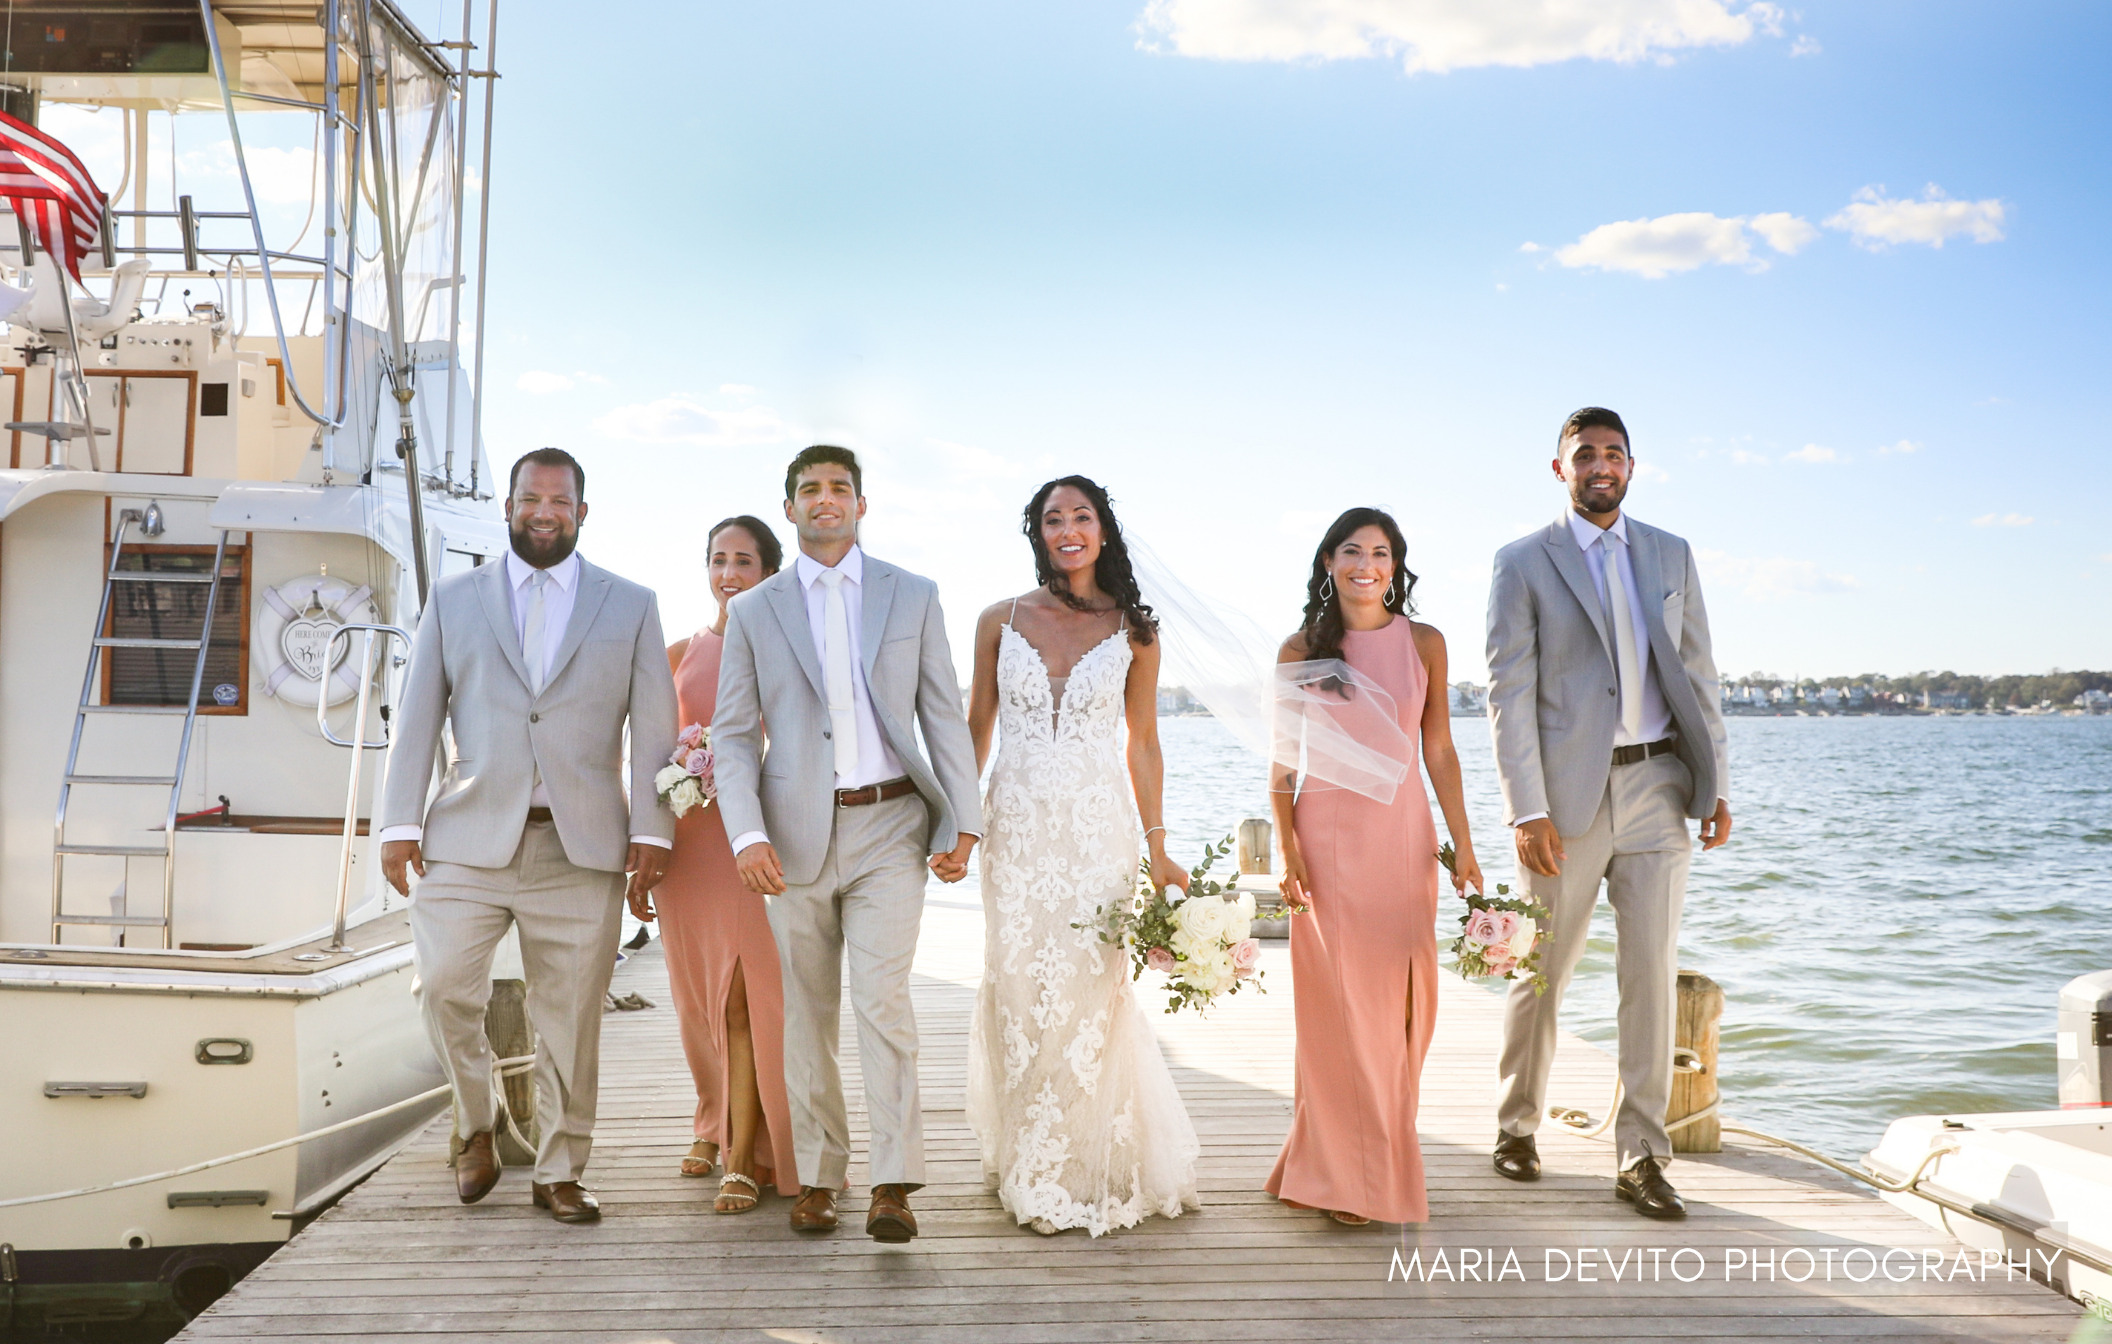 Wedding party walking towards camera on dock next to boat with water in background. Bridesmaids are holding bouquets.